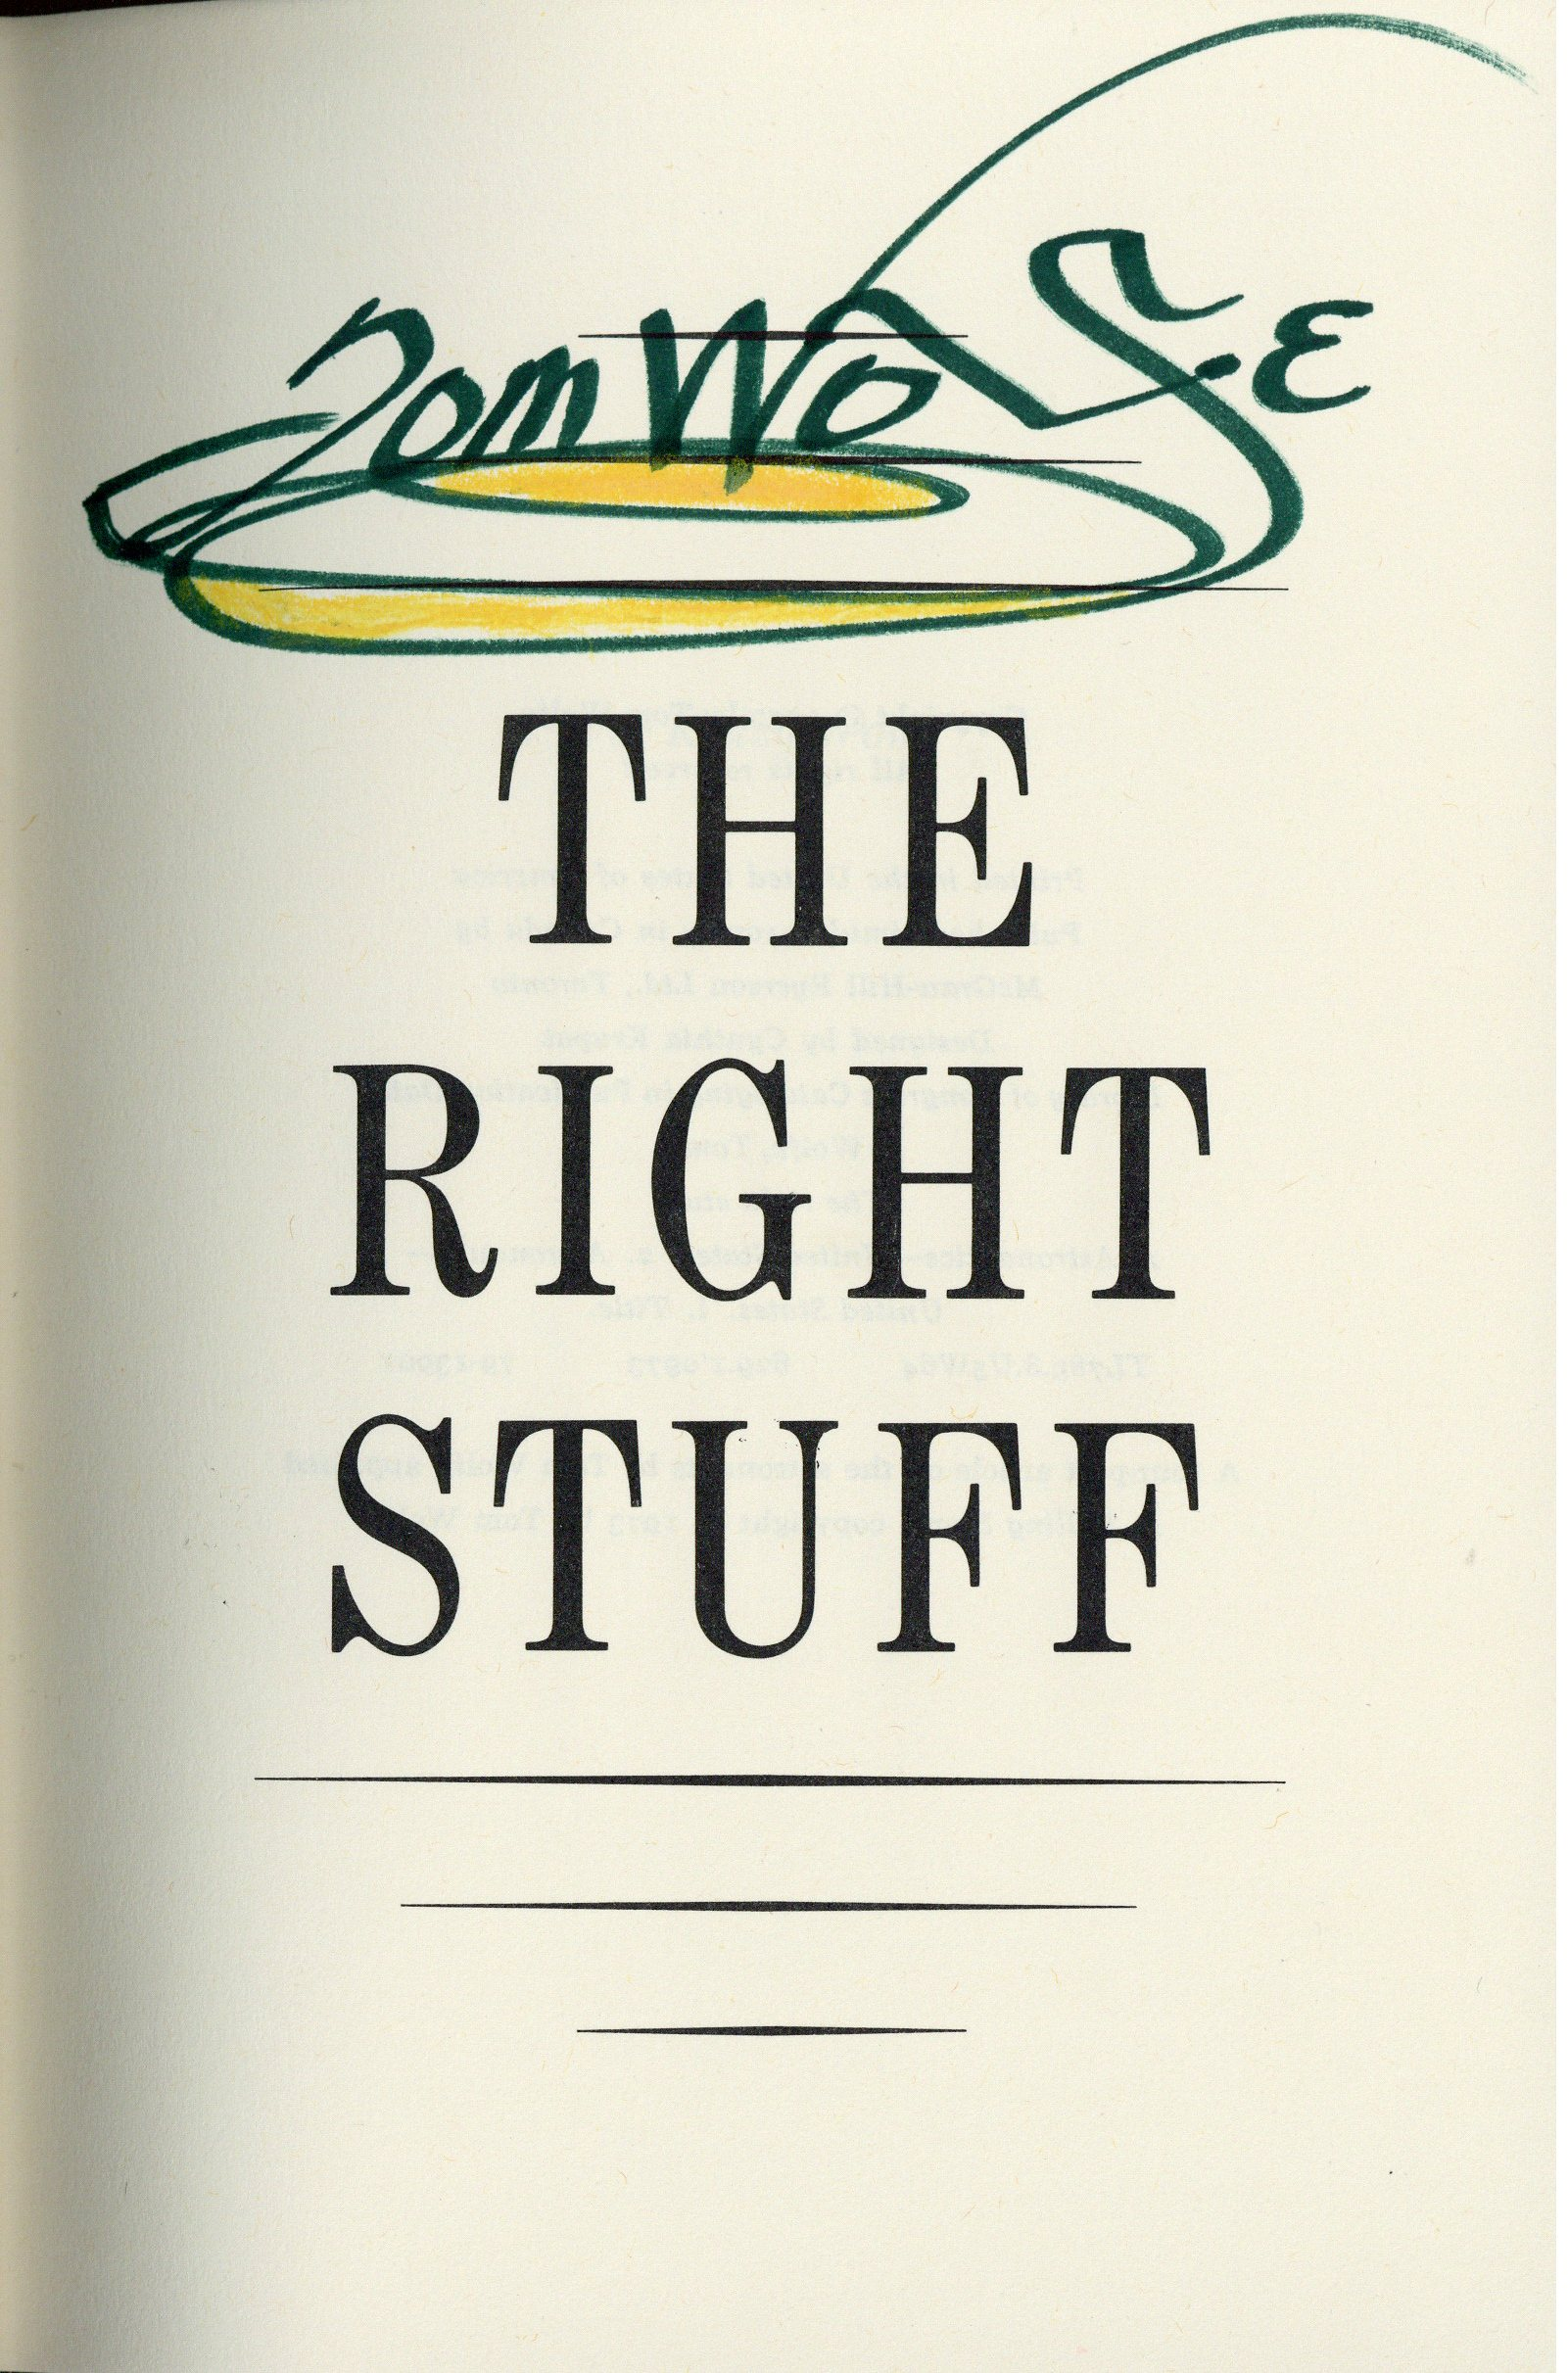 The+Right+Stuff+by+Tom+Wolfe+%281979%29 - The Right Stuff by Tom Wolfe (1979)